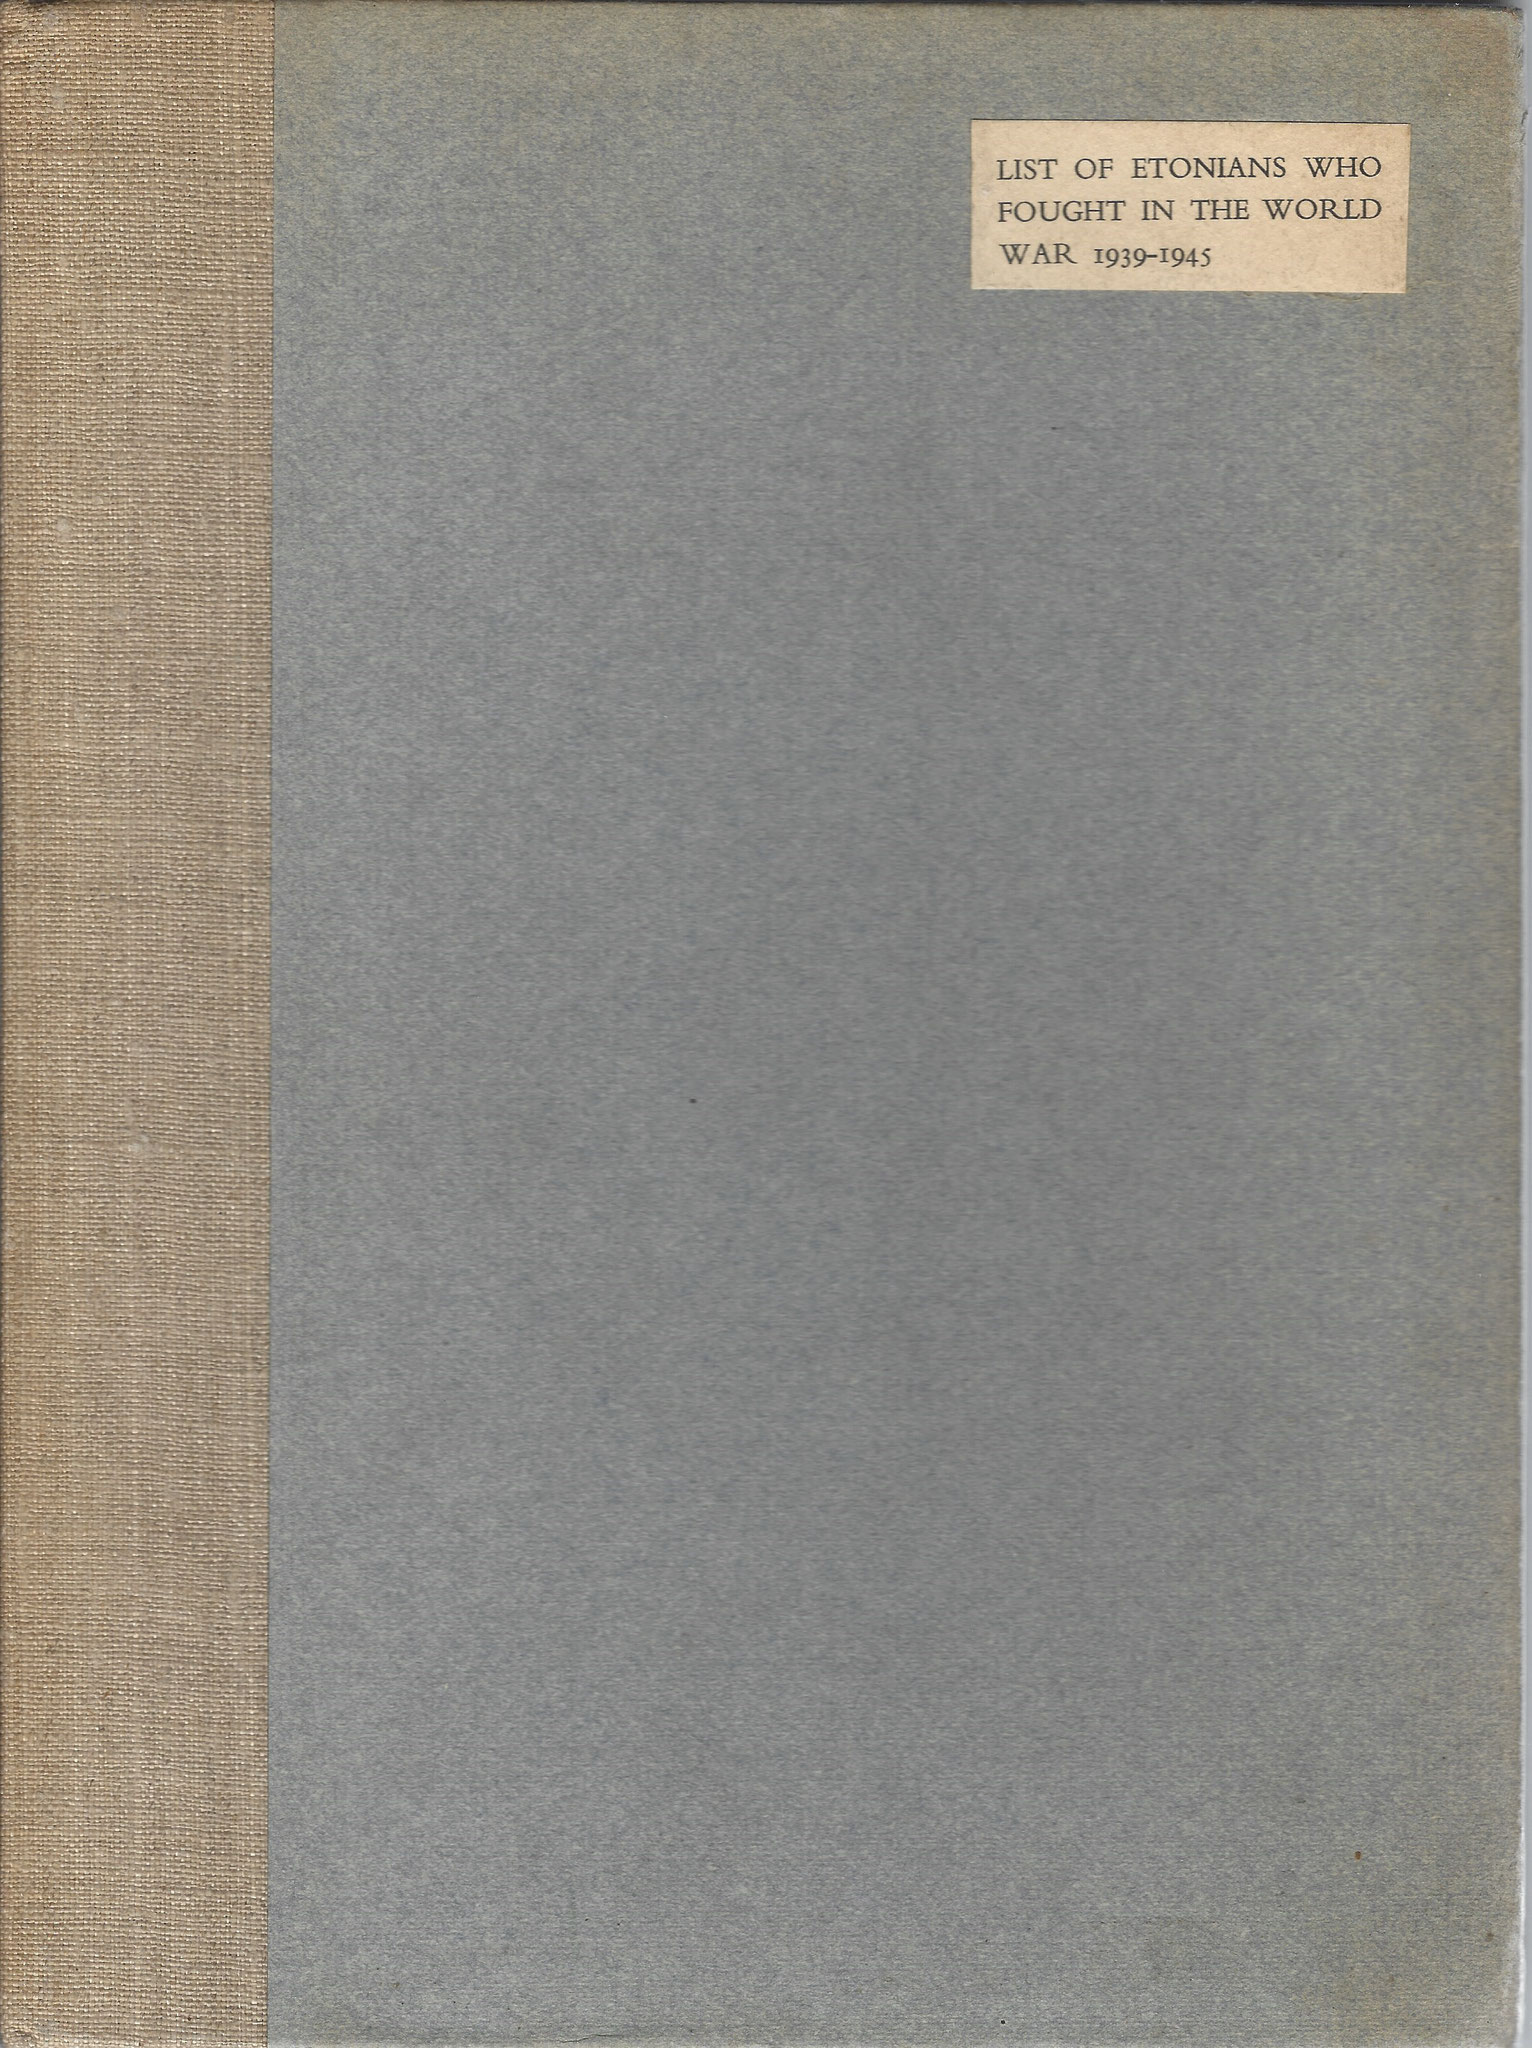 Roll of Honour, of Etonians, 1950 including Arnhem Casualties (collection P. Reinders)